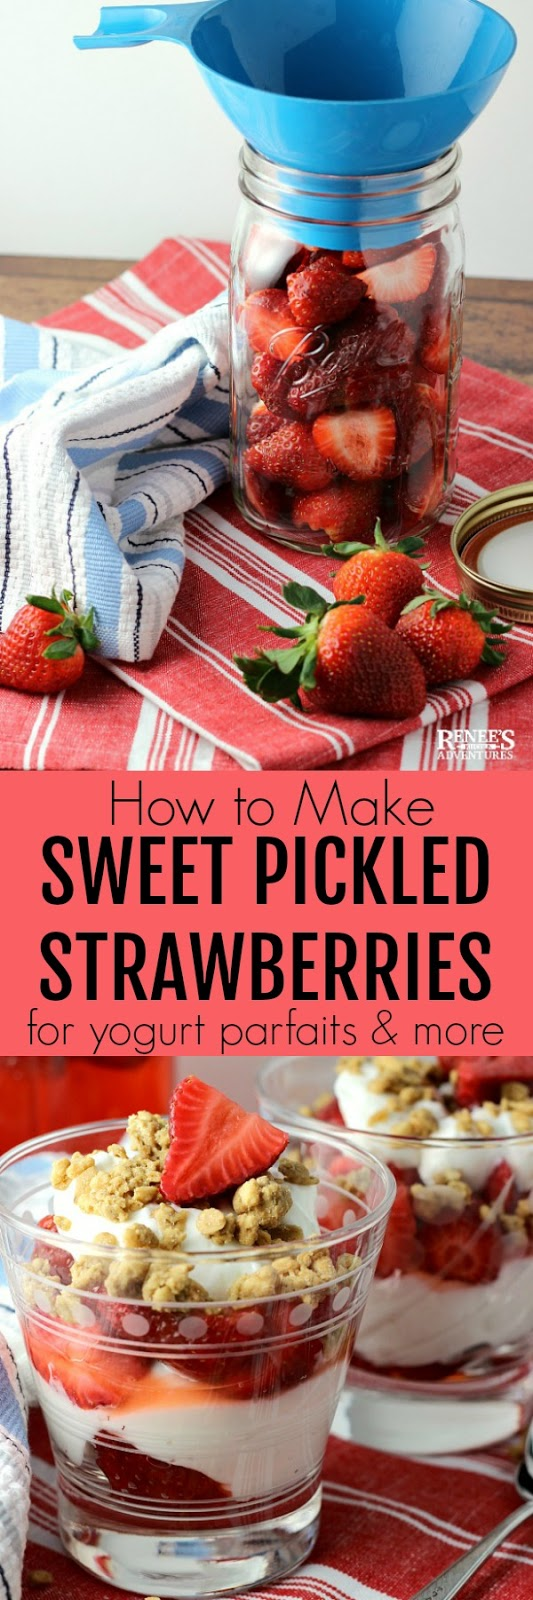 How to pickle strawberries and use them in a Yogurt Parfait pin for Pinterest with two images of pickled strawberries and yogurt parfaits